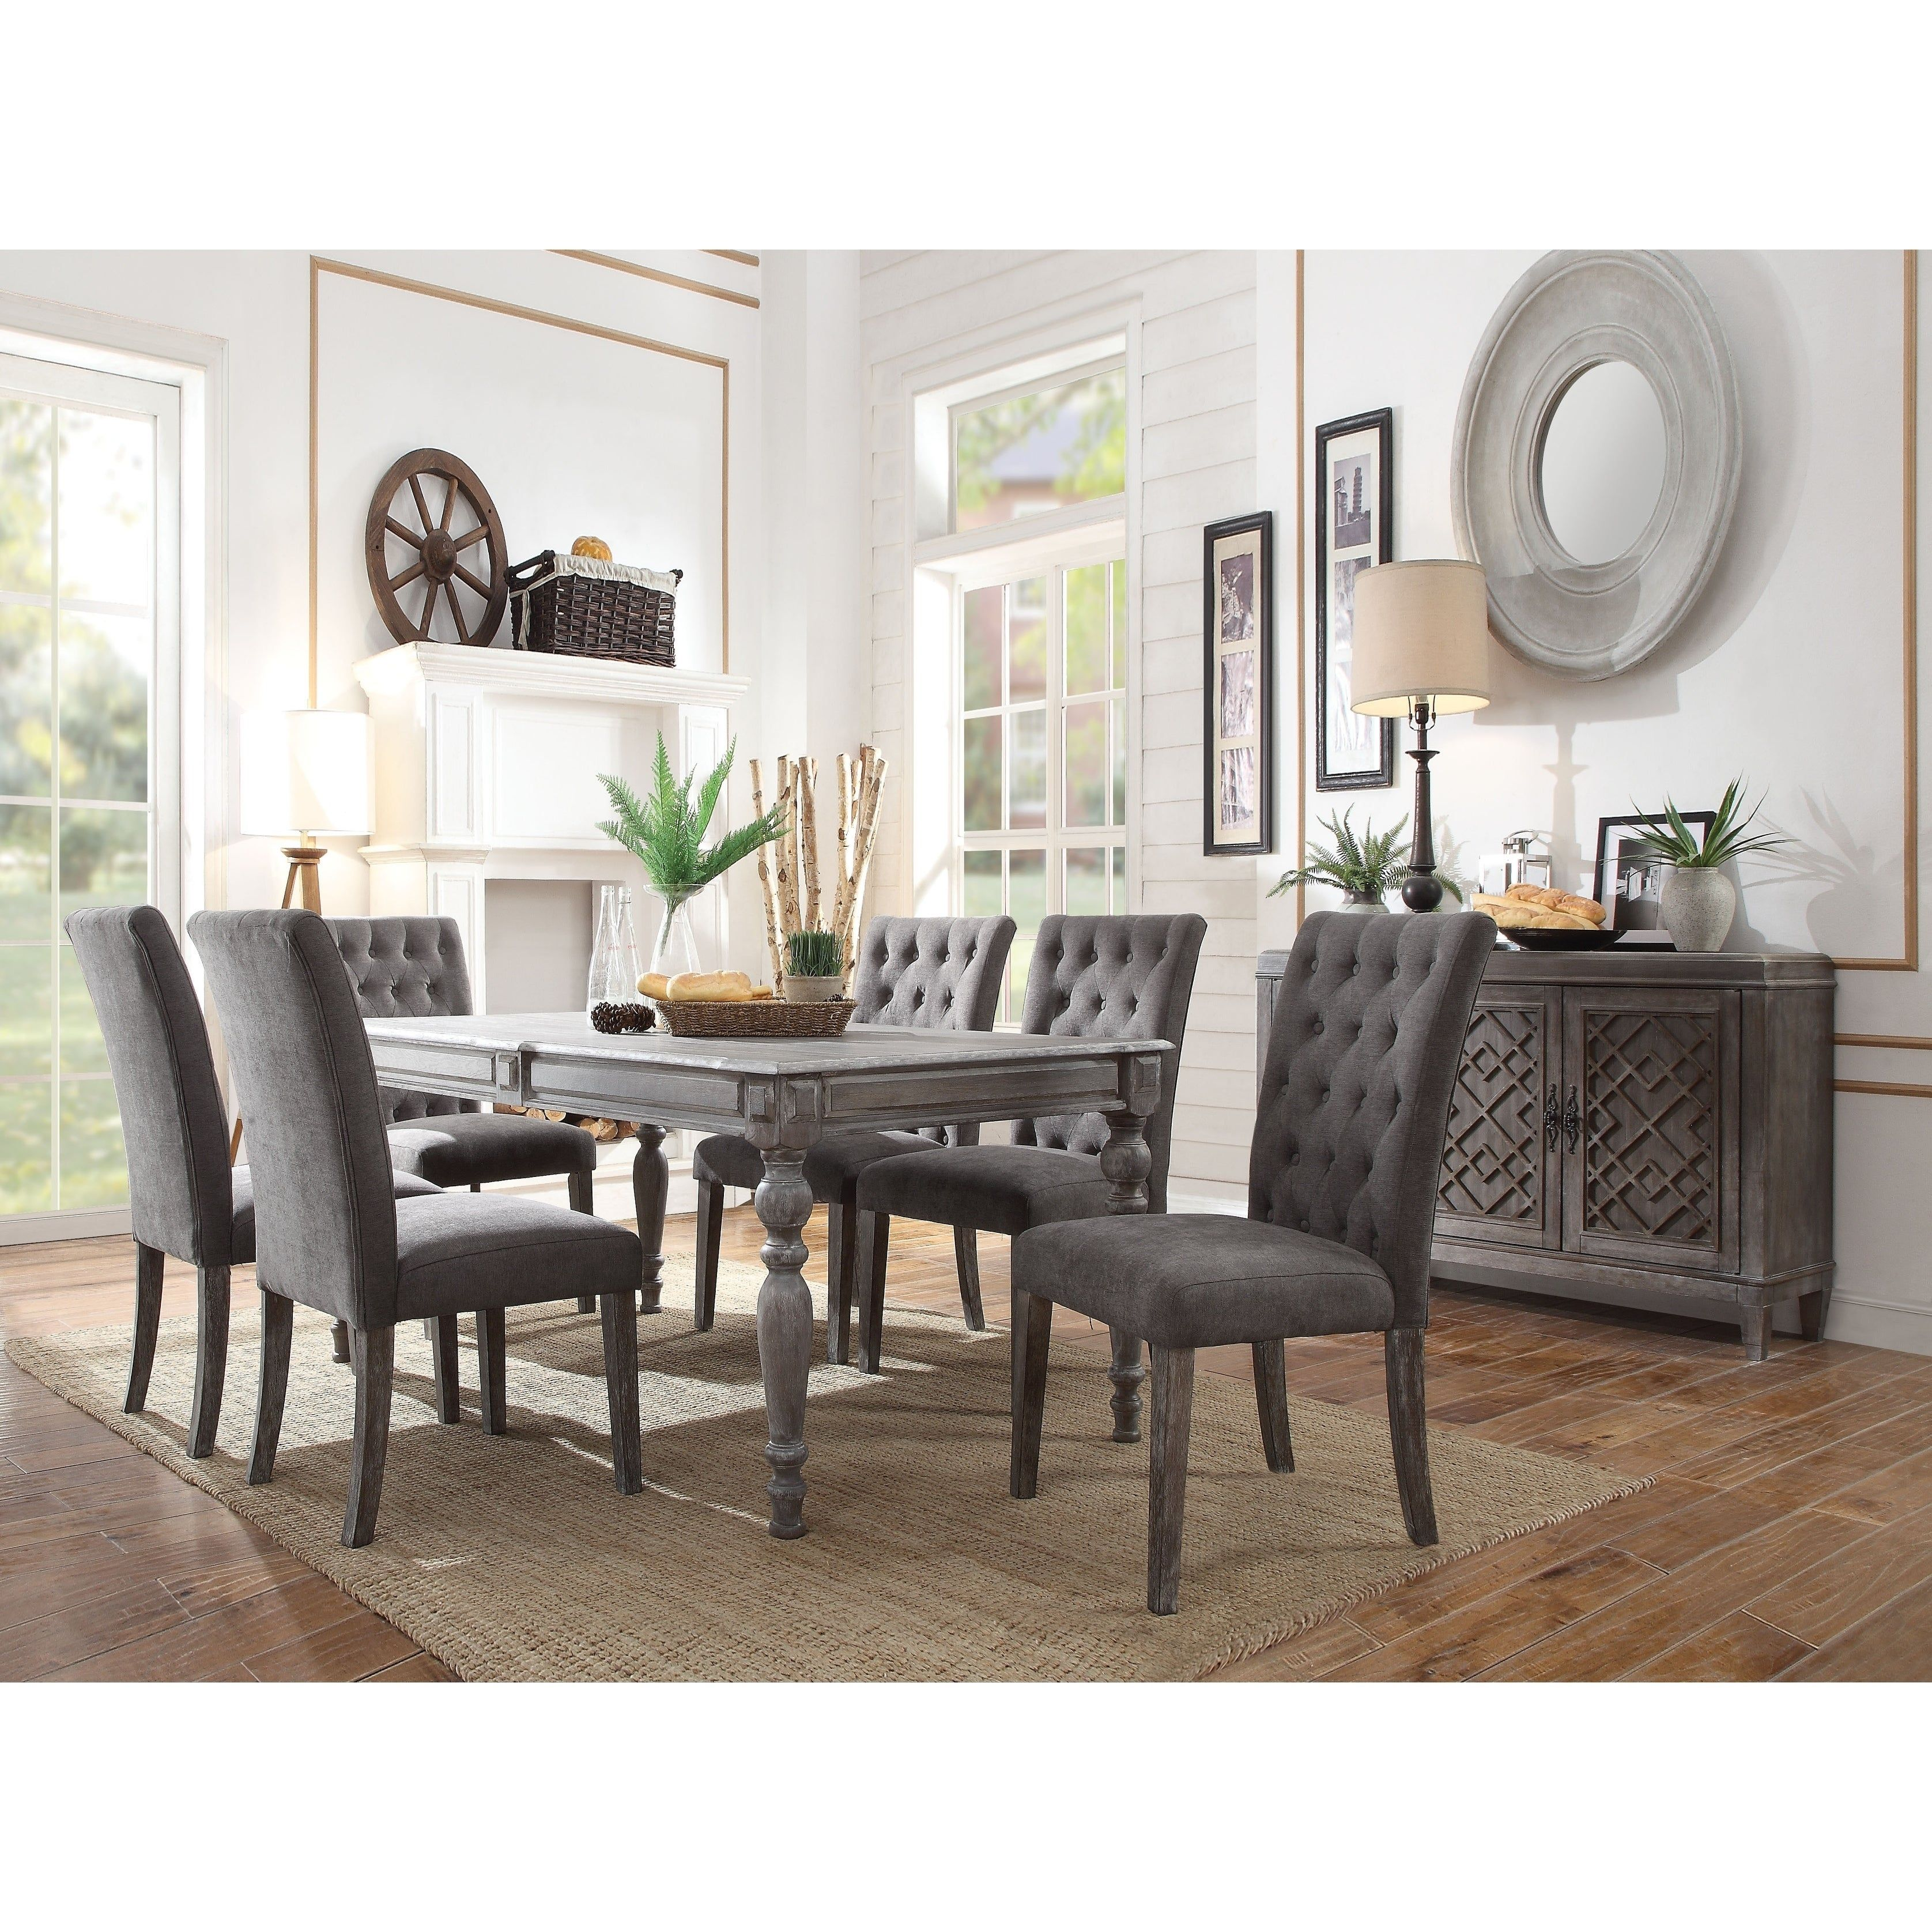 Online Shopping Bedding Furniture Electronics Jewelry Clothing More Dining Table Acme Furniture Dining Chair Set